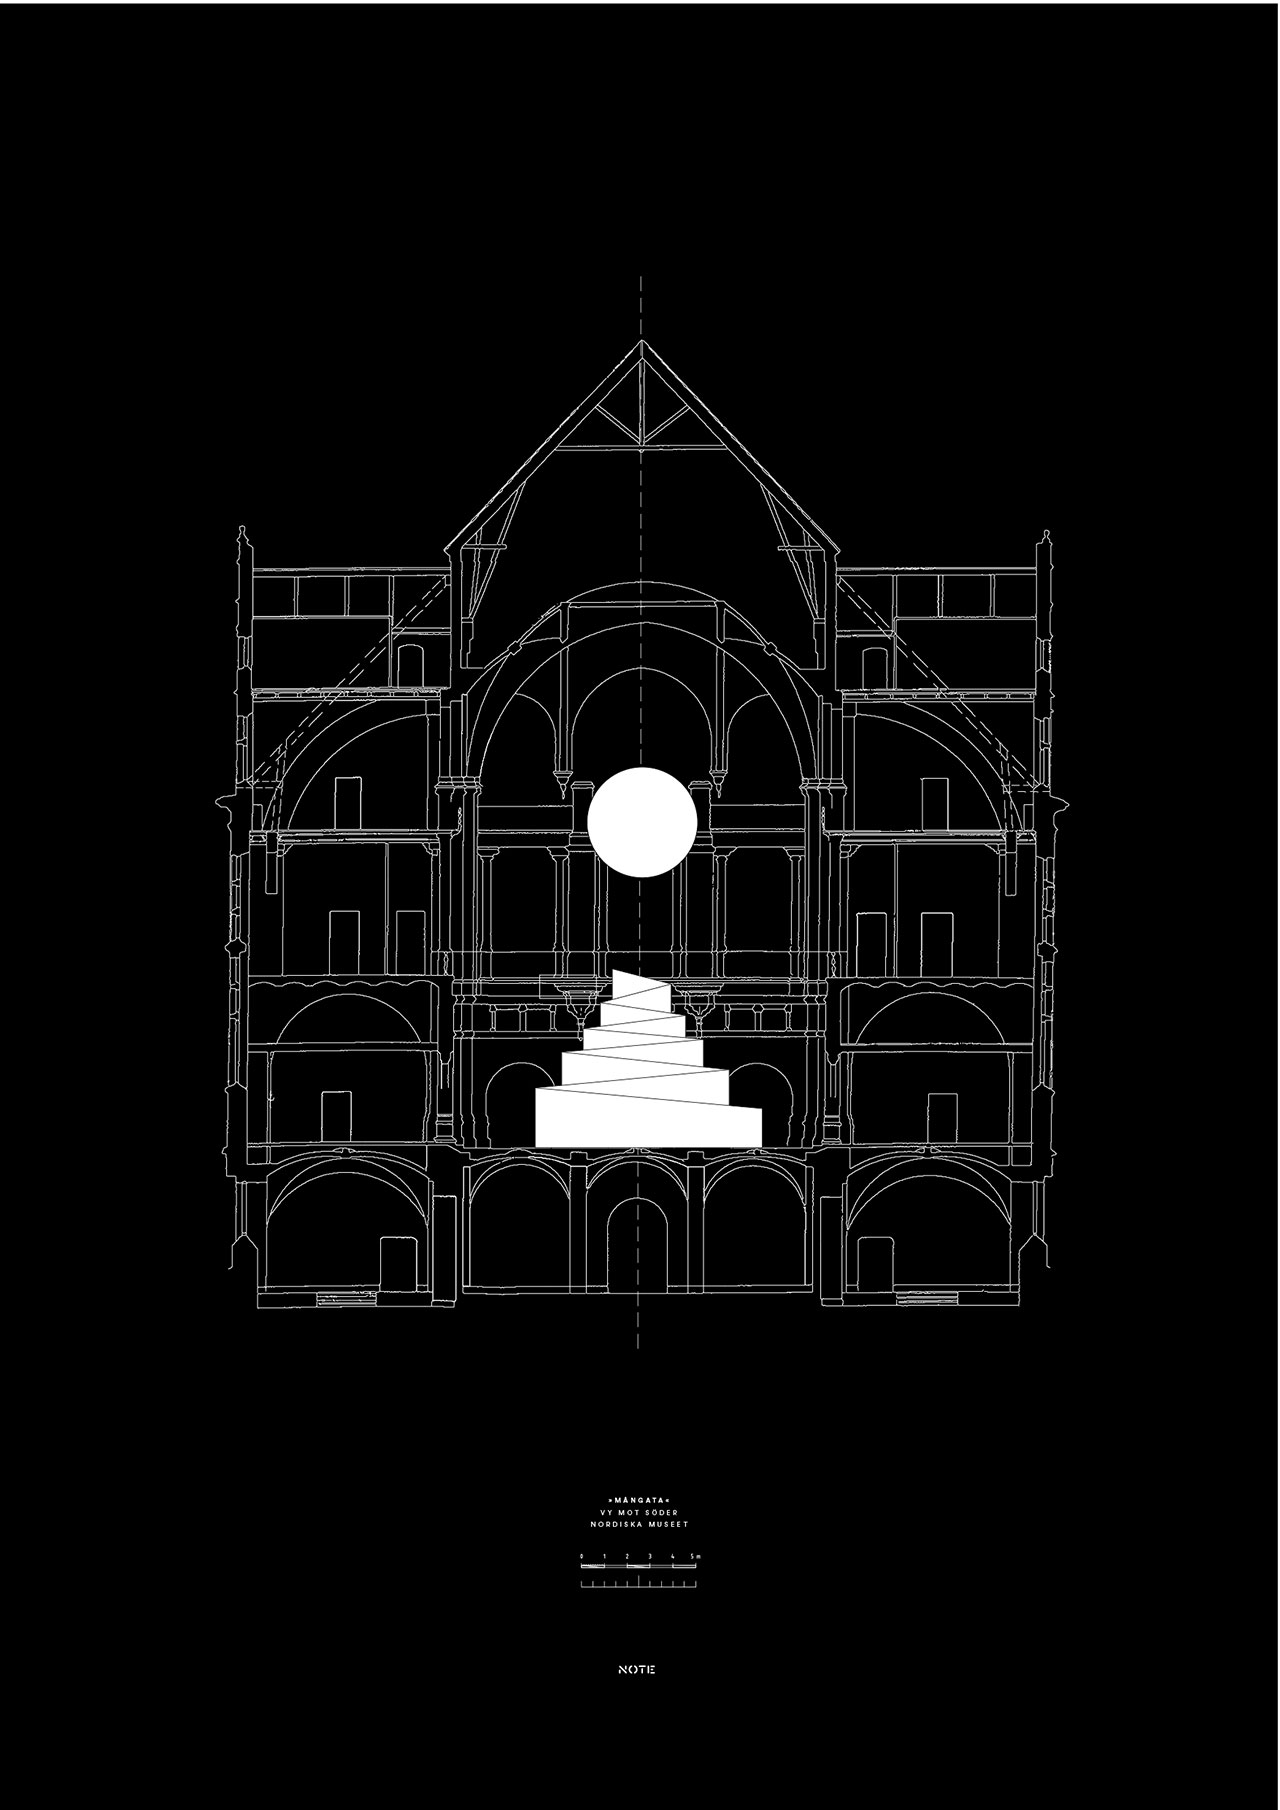 South view - Moon. © Note design studio.